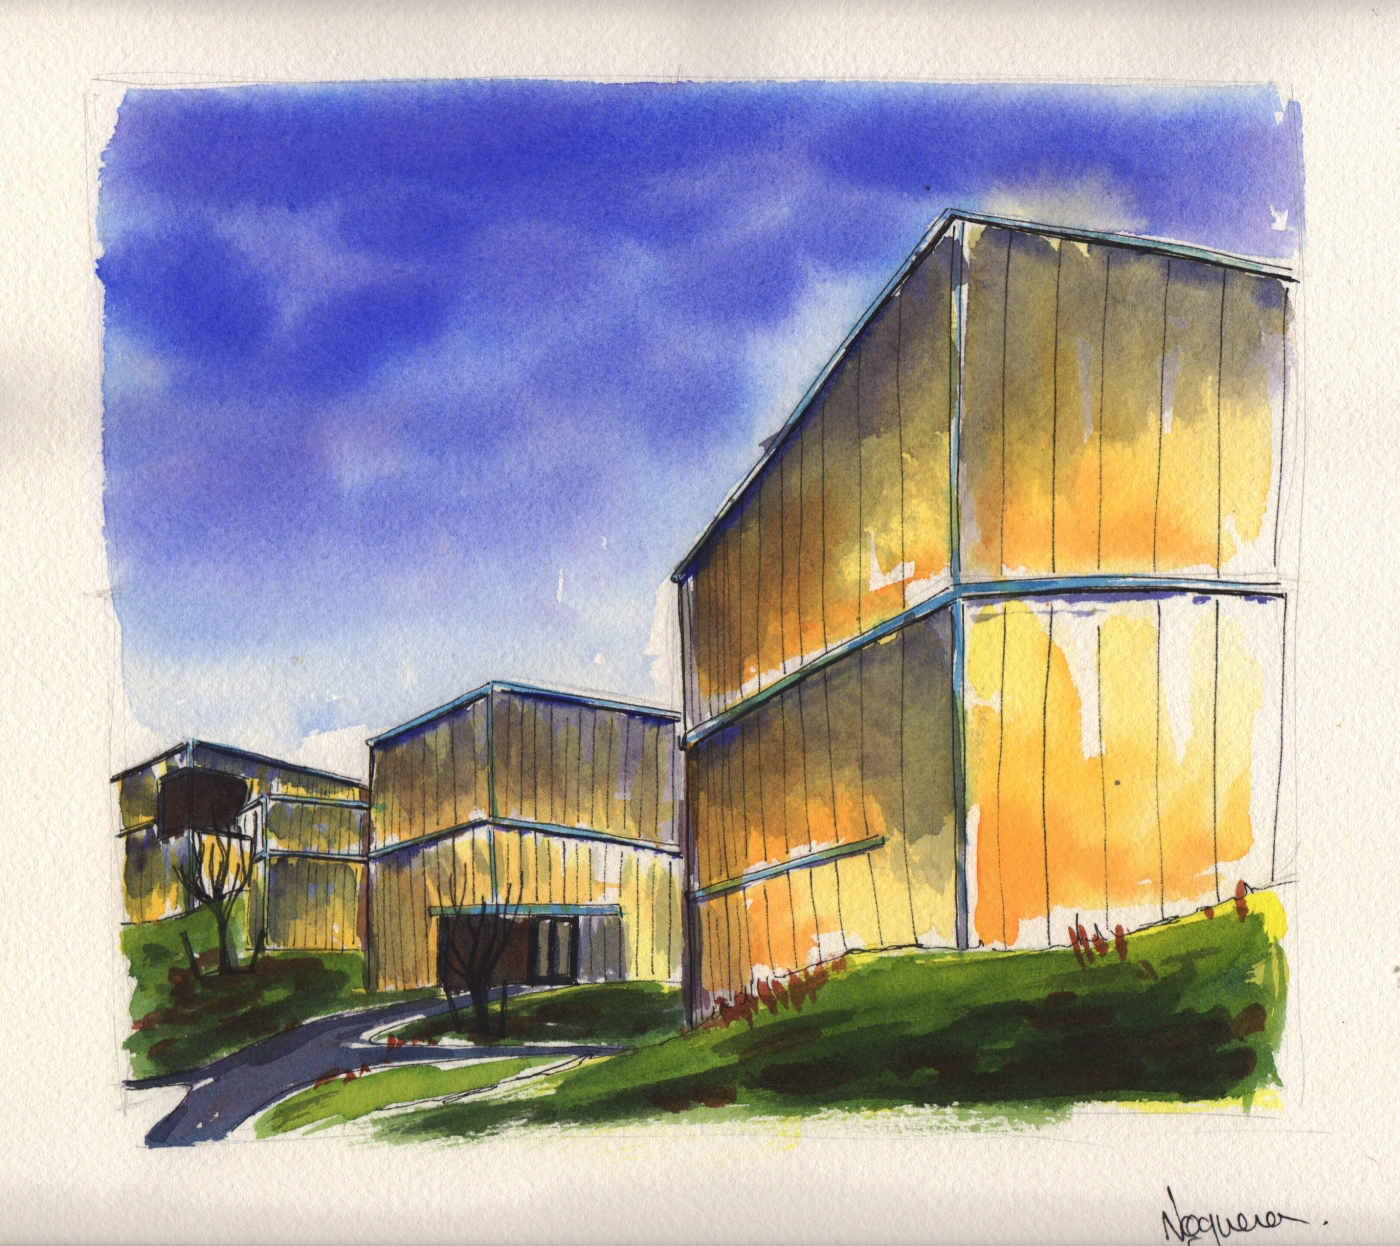 Nelson-Atkins Museum of Art - Doodlewash by Philippe Noguera